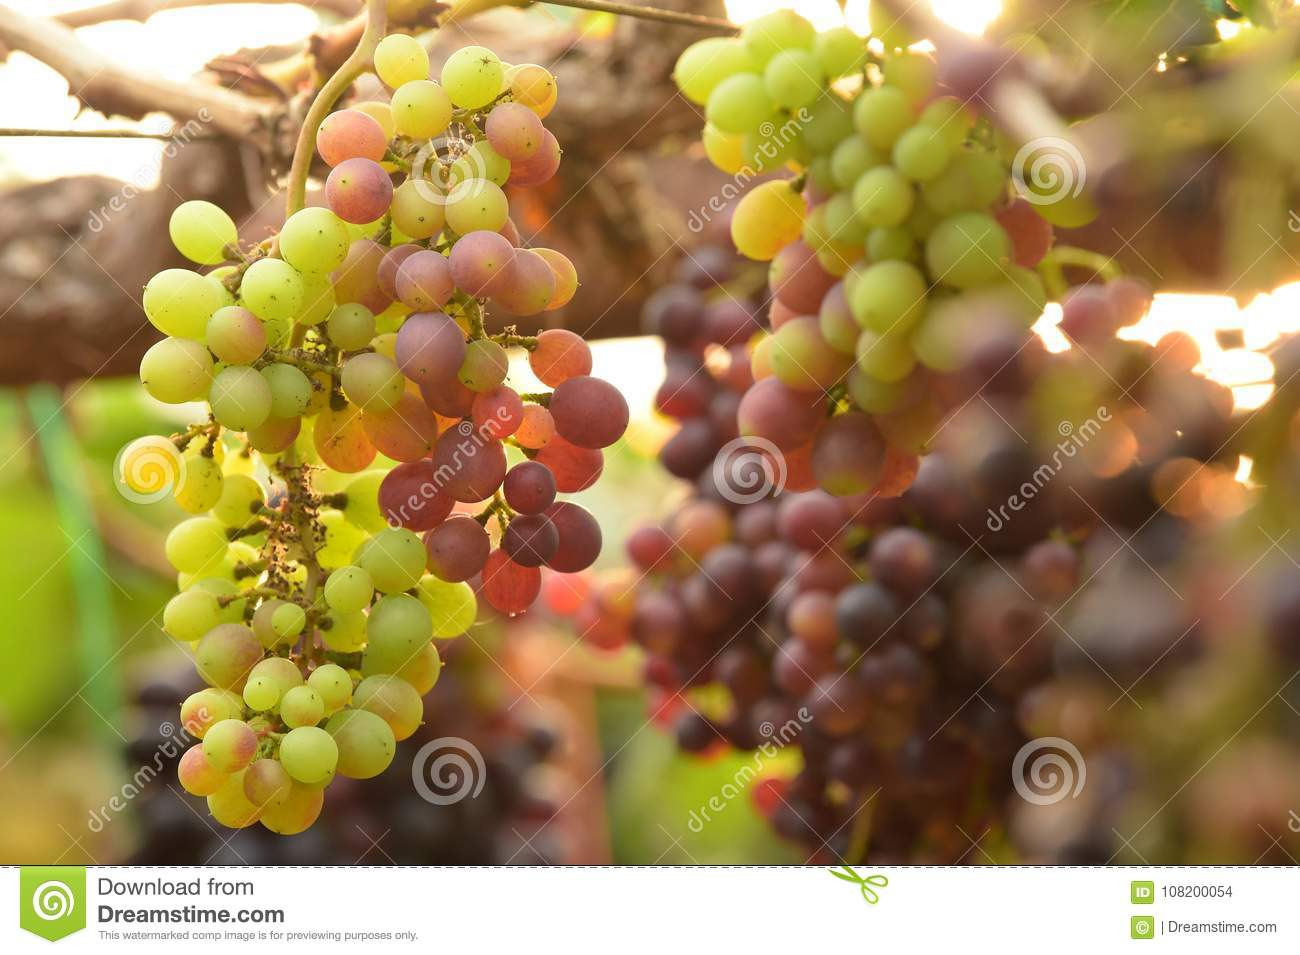 Red ripe grapes stock photo. Image of farm, plant, beauty - 108200054